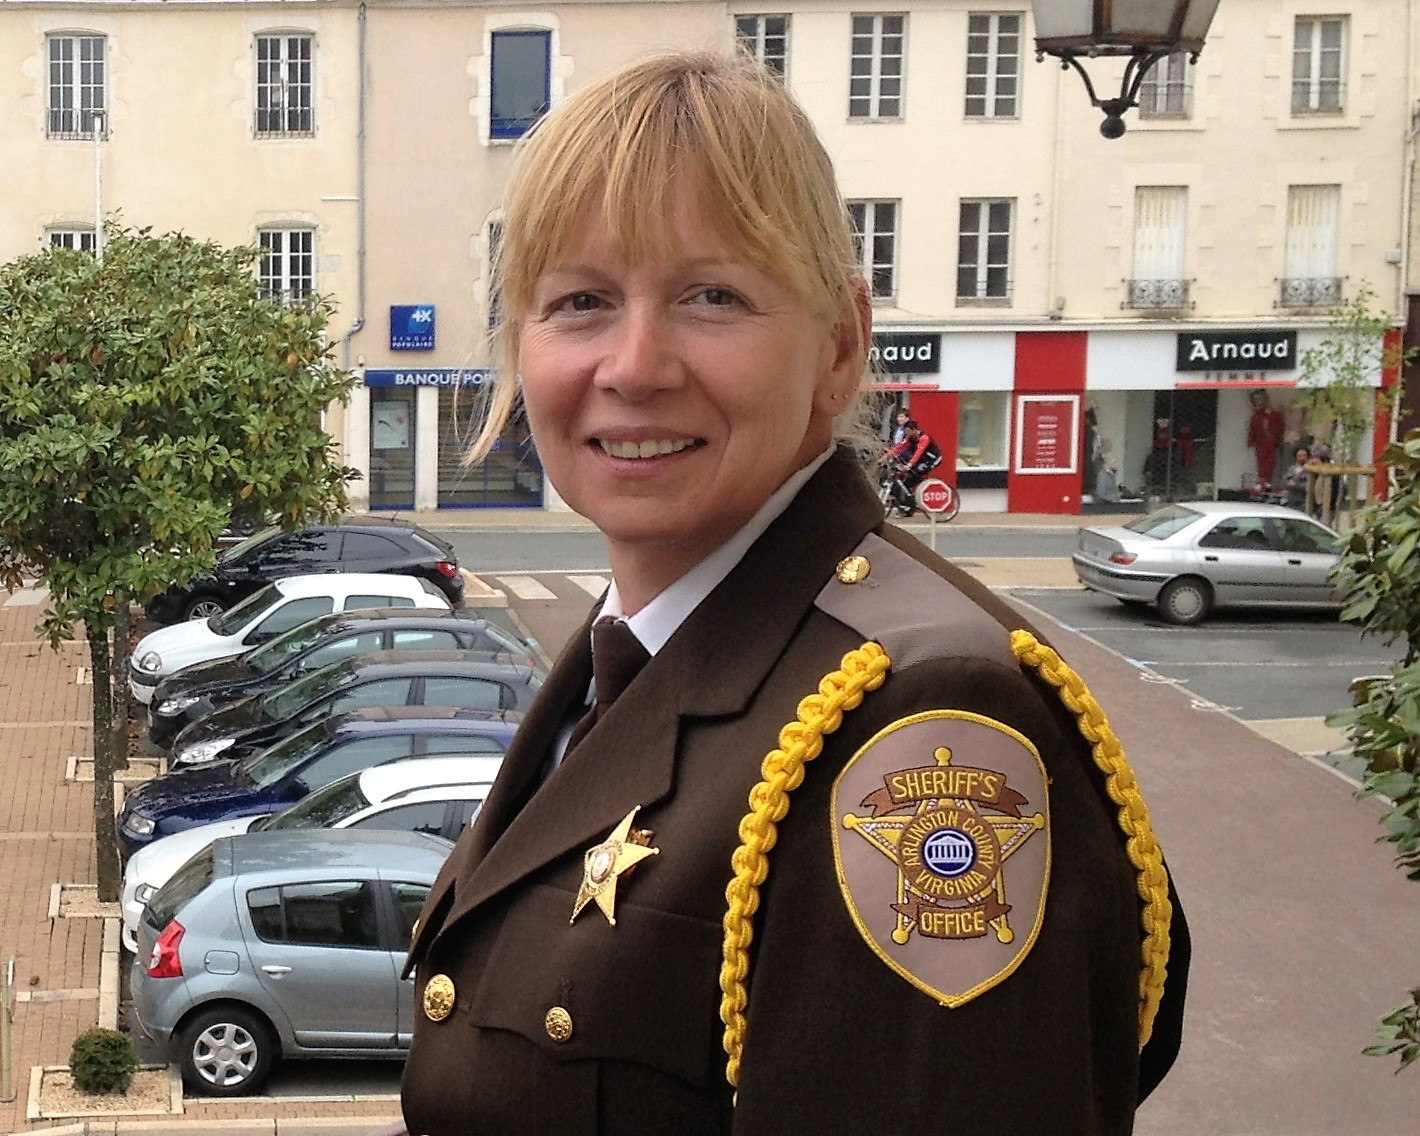 Photo of a woman sheriff officer in uniform.